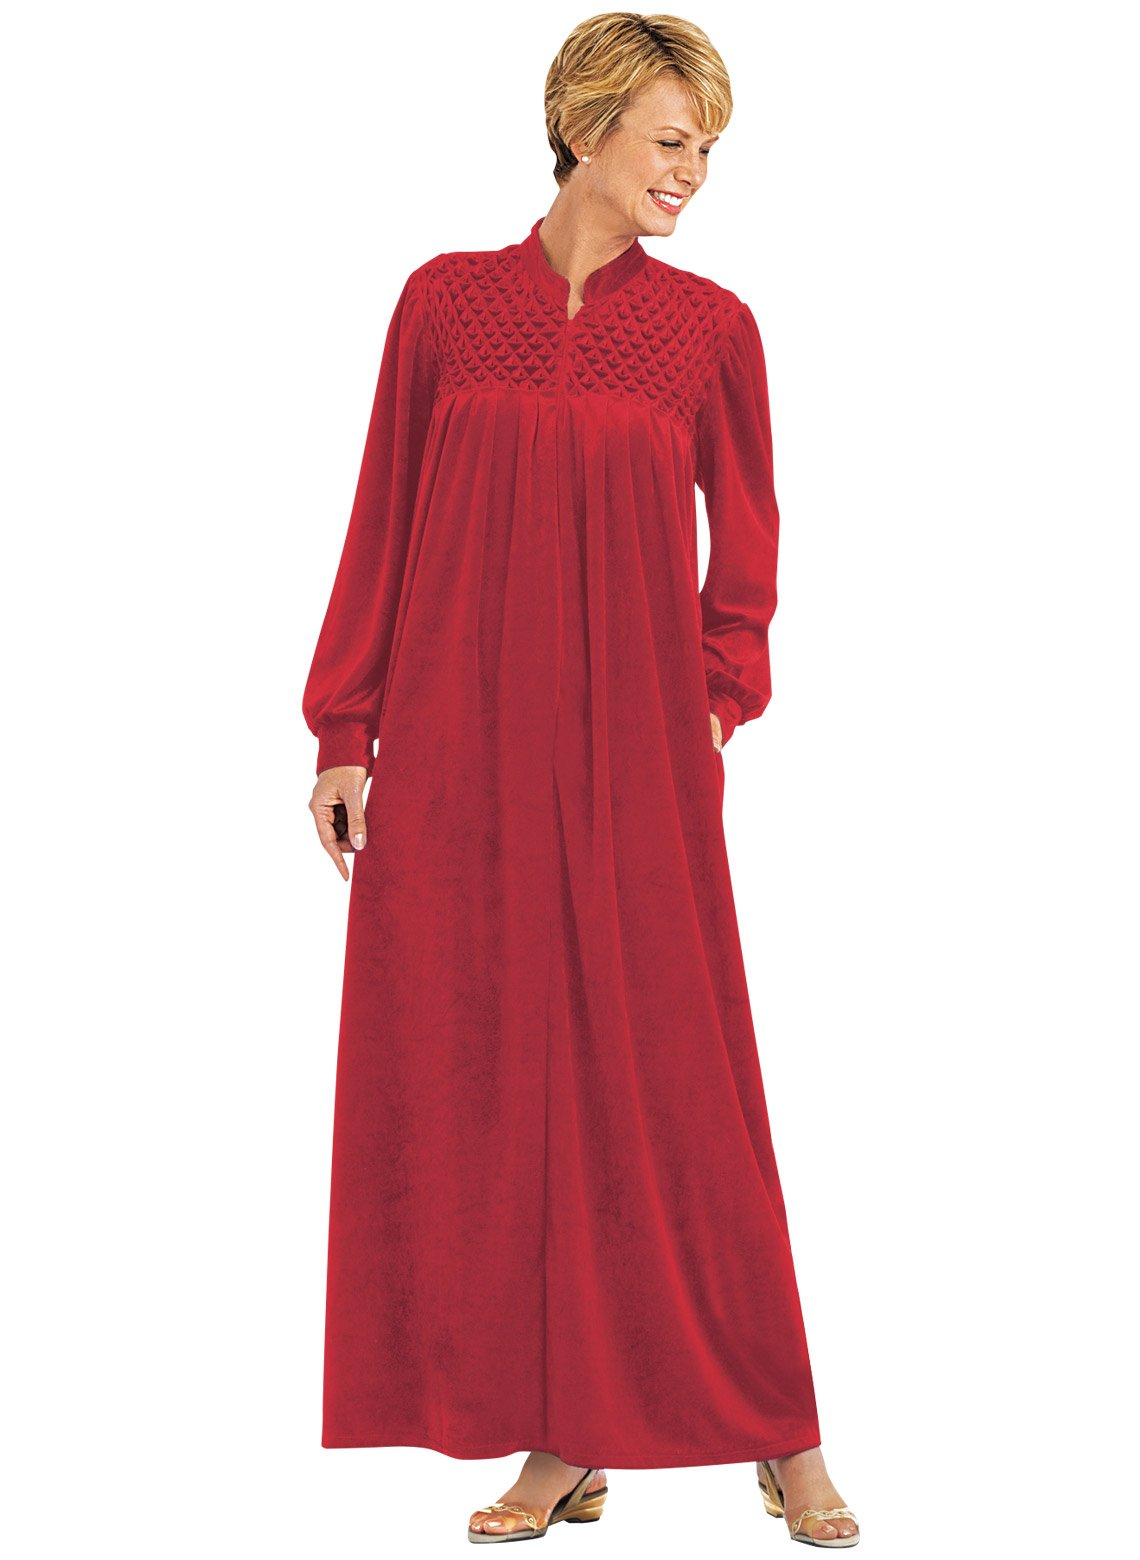 Carol Wright Gifts Zip-Front Velour Robe, Color Red, Size Large, Red, Size Large